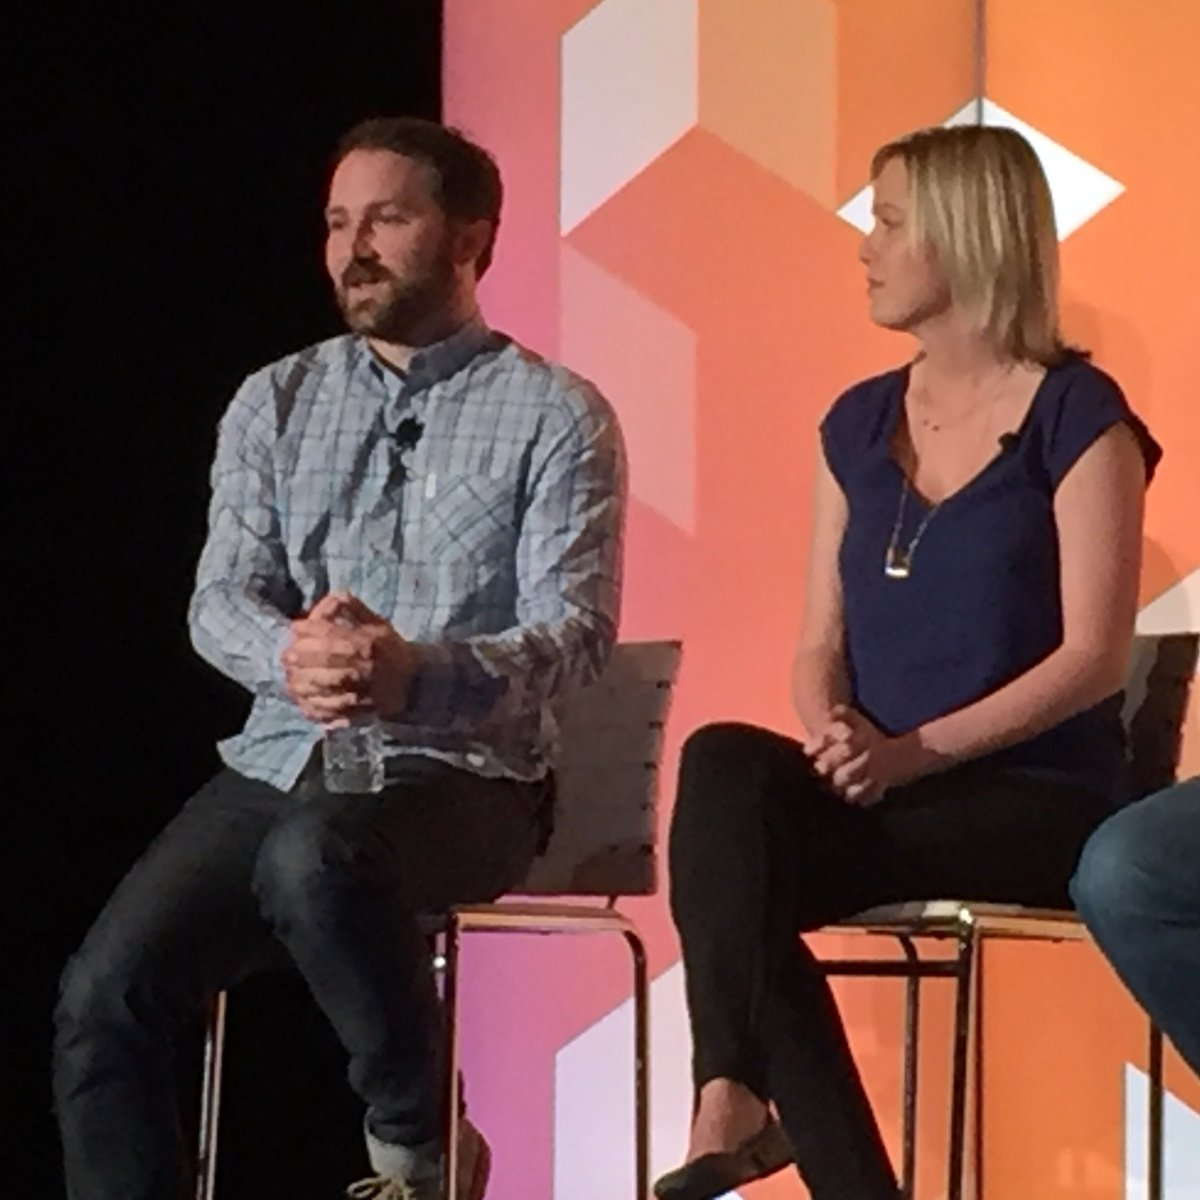 annhud: Gabriel Francis of @Facebook talks mobile at #MagentoImagine. New strategies needed to reach people on all devices https://t.co/6vJx7VaBqb